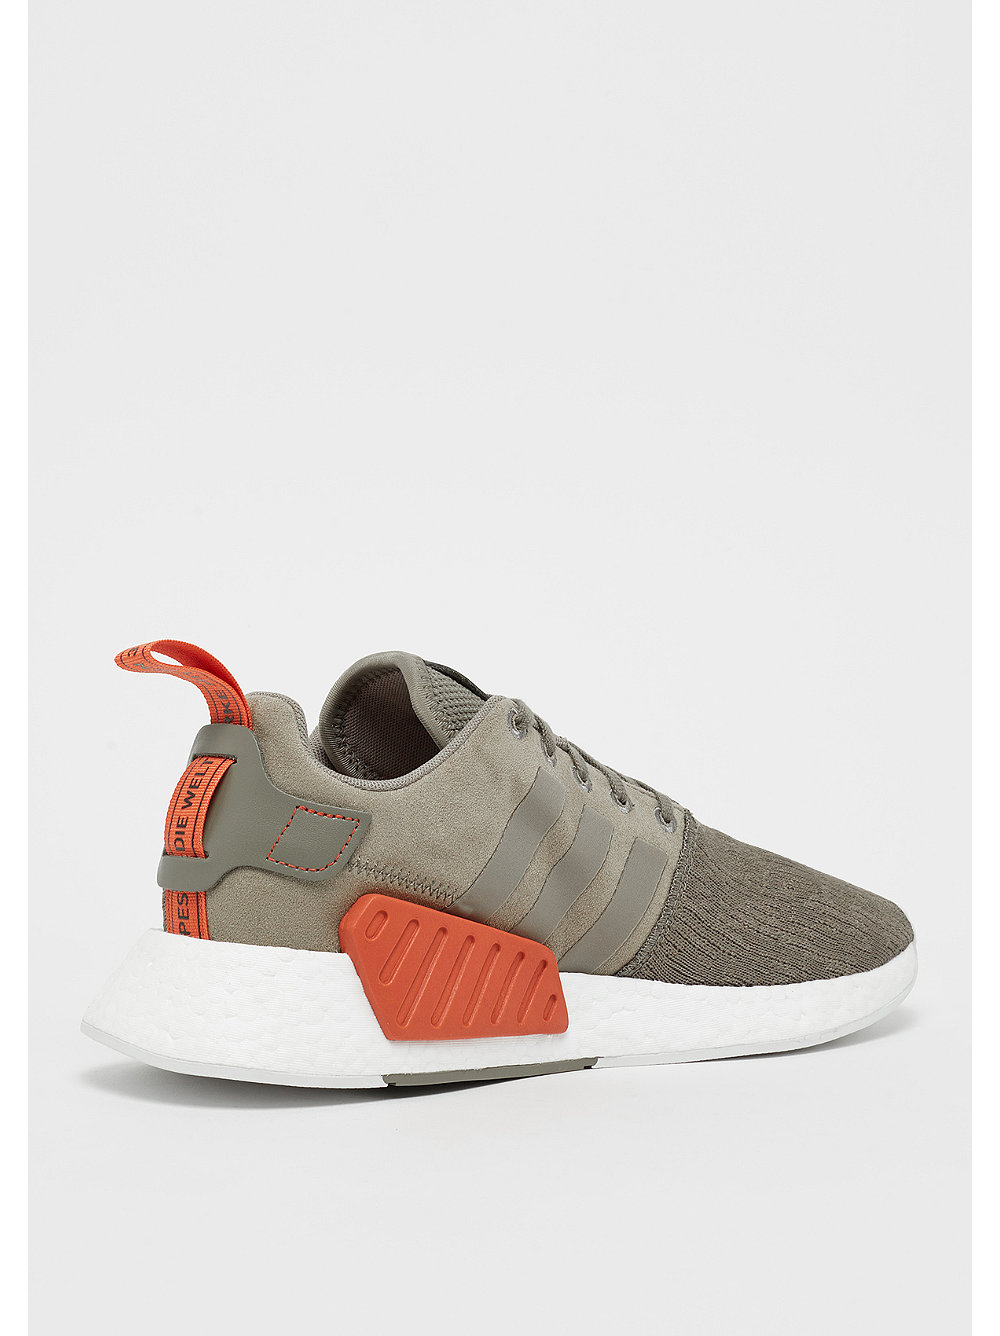 Adidas NMD R2 PK Trace Cargo Olive Size 12.5 Men's BA7198 100